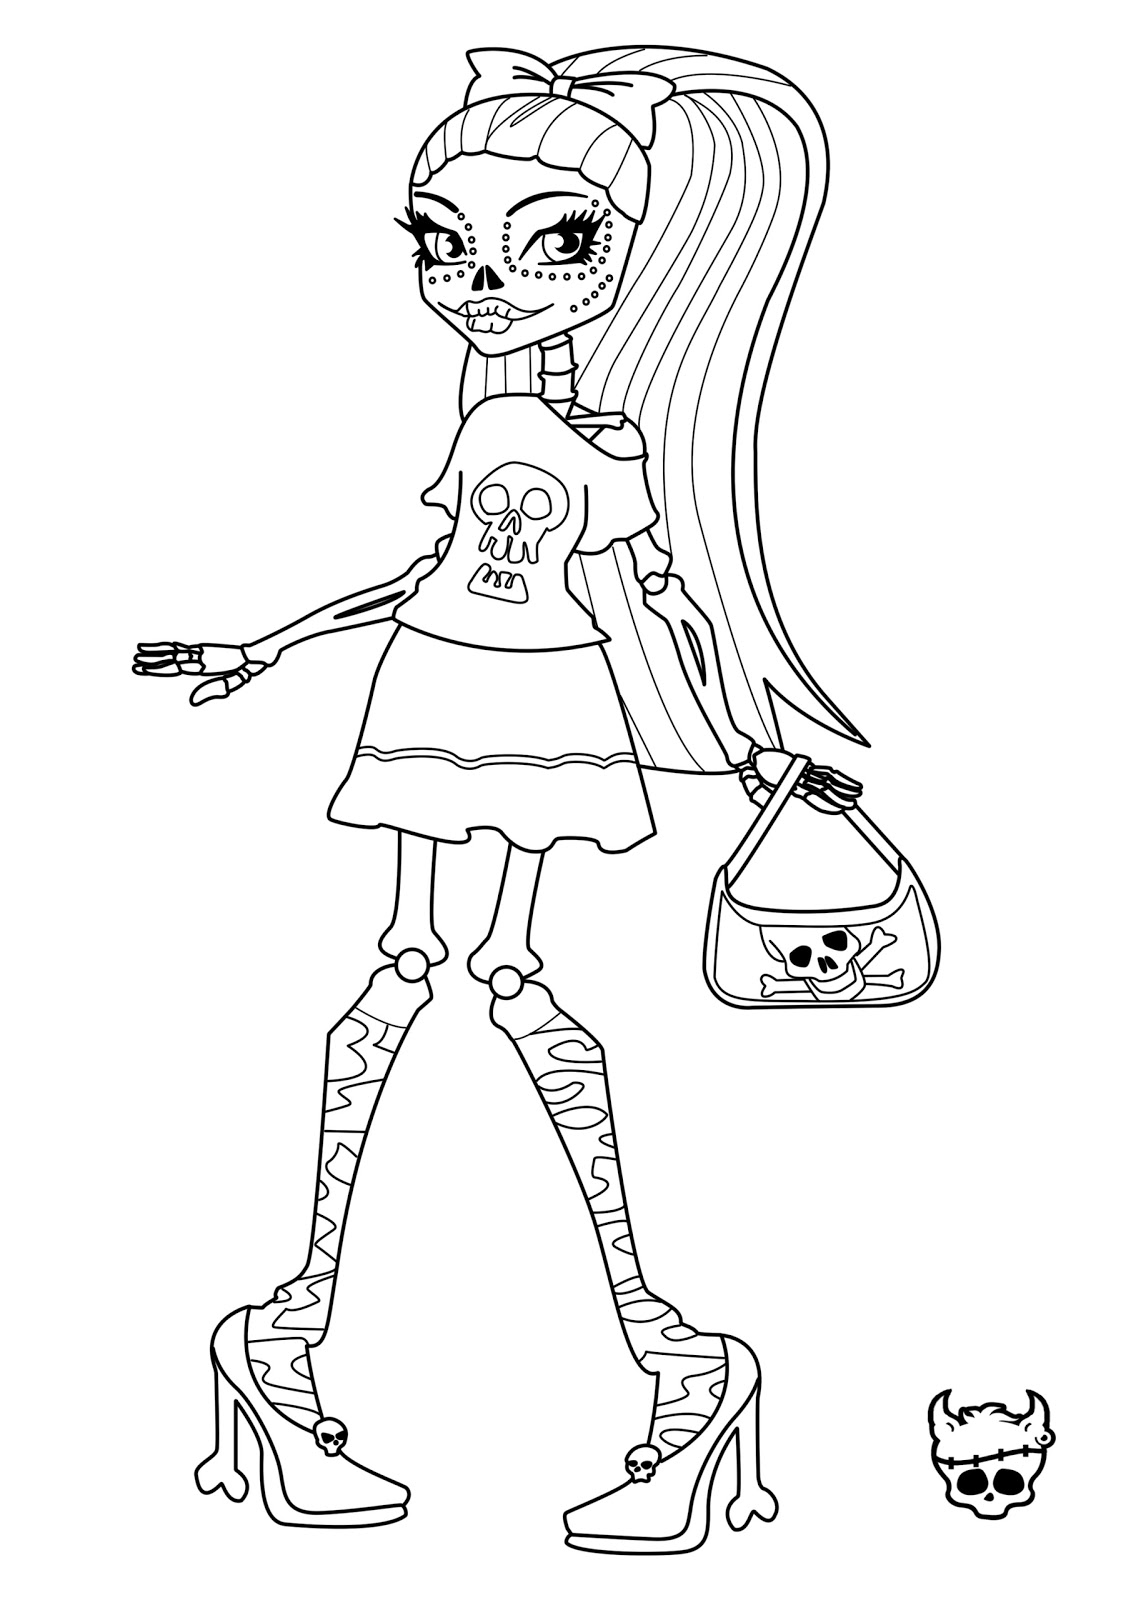 Monster high skelita calaveras coloring page learn to for Monster high free coloring pages